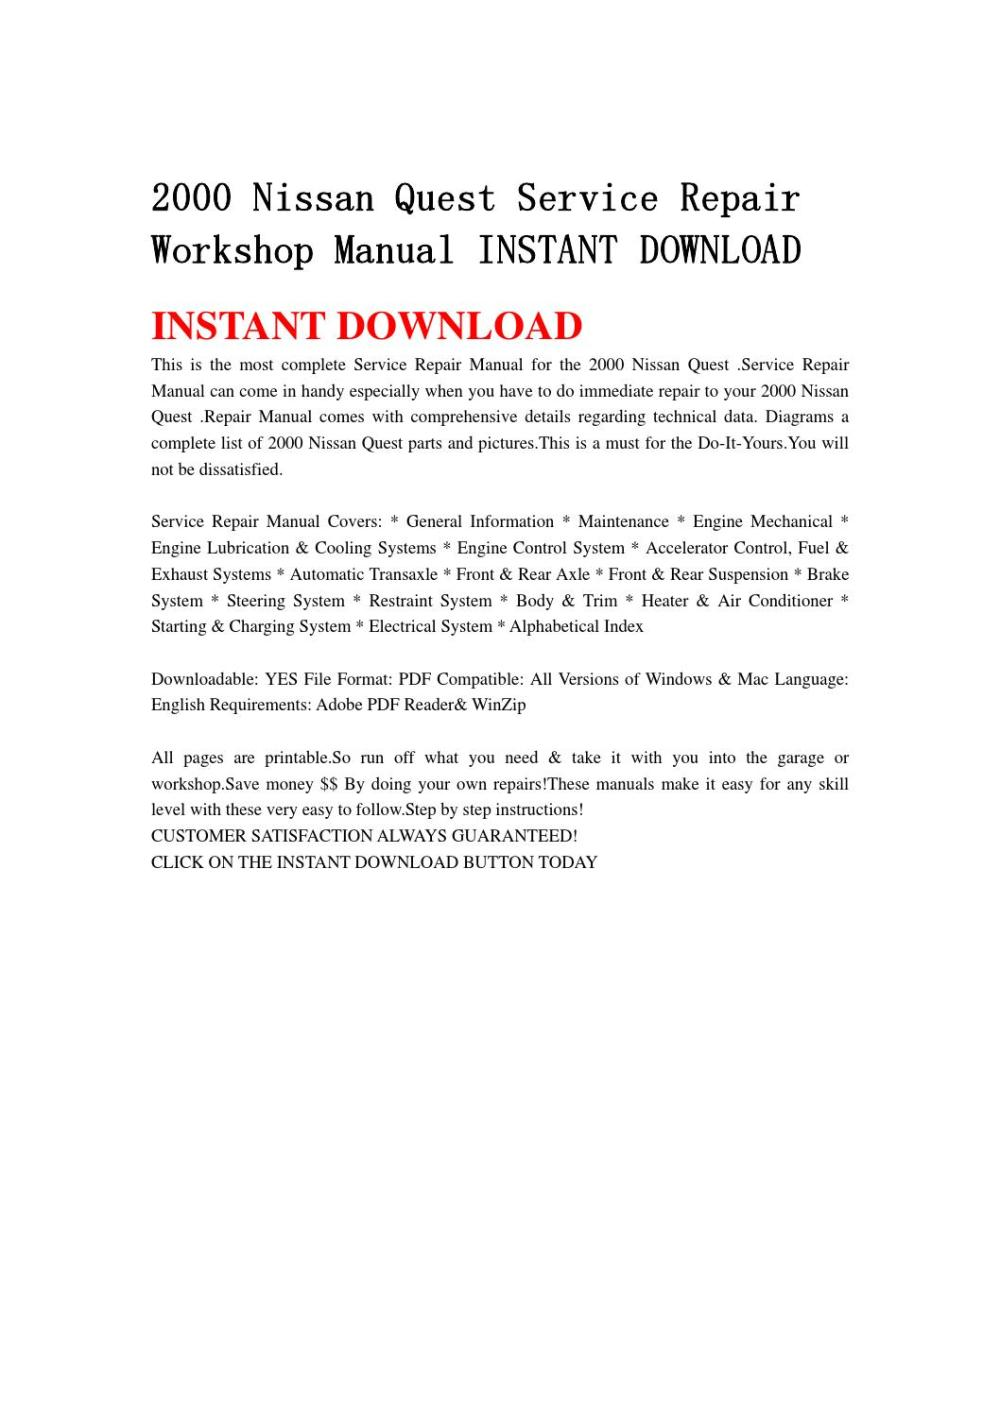 medium resolution of 2000 nissan quest service repair workshop manual instant download by hfgsbefhnsebb issuu